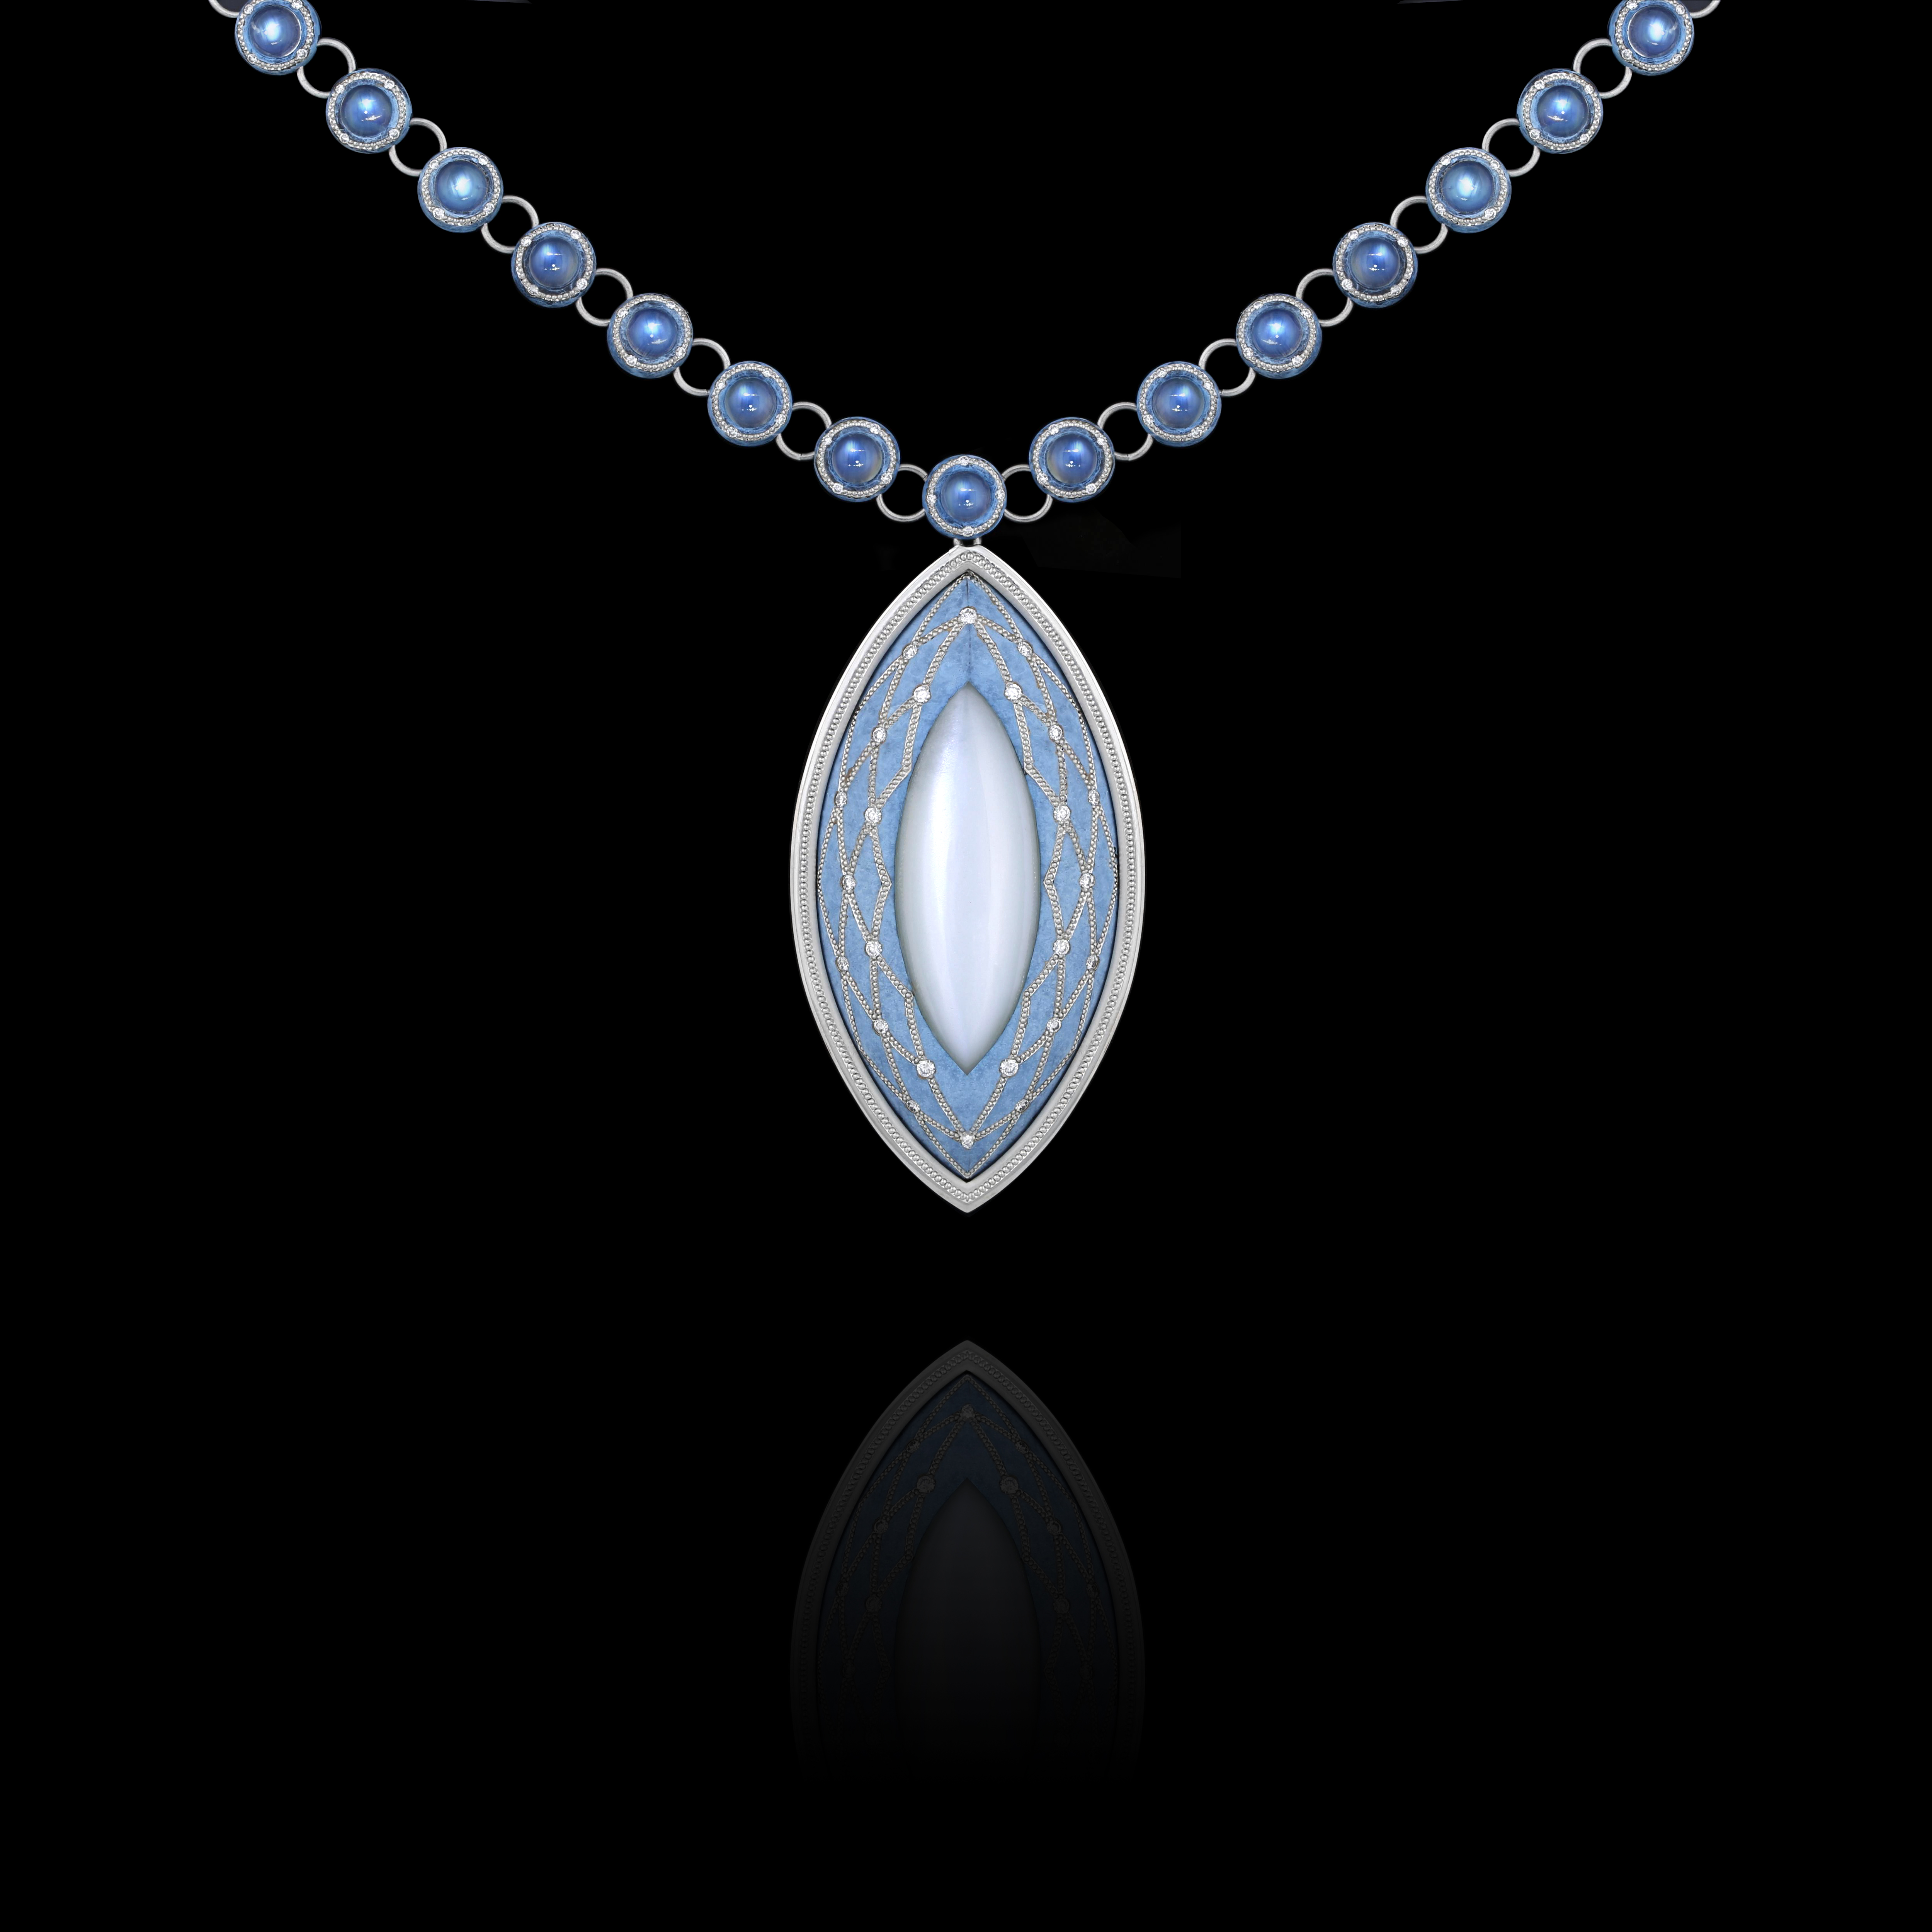 The value of the Zoltan Davis Iris Pendant is about $56,000.